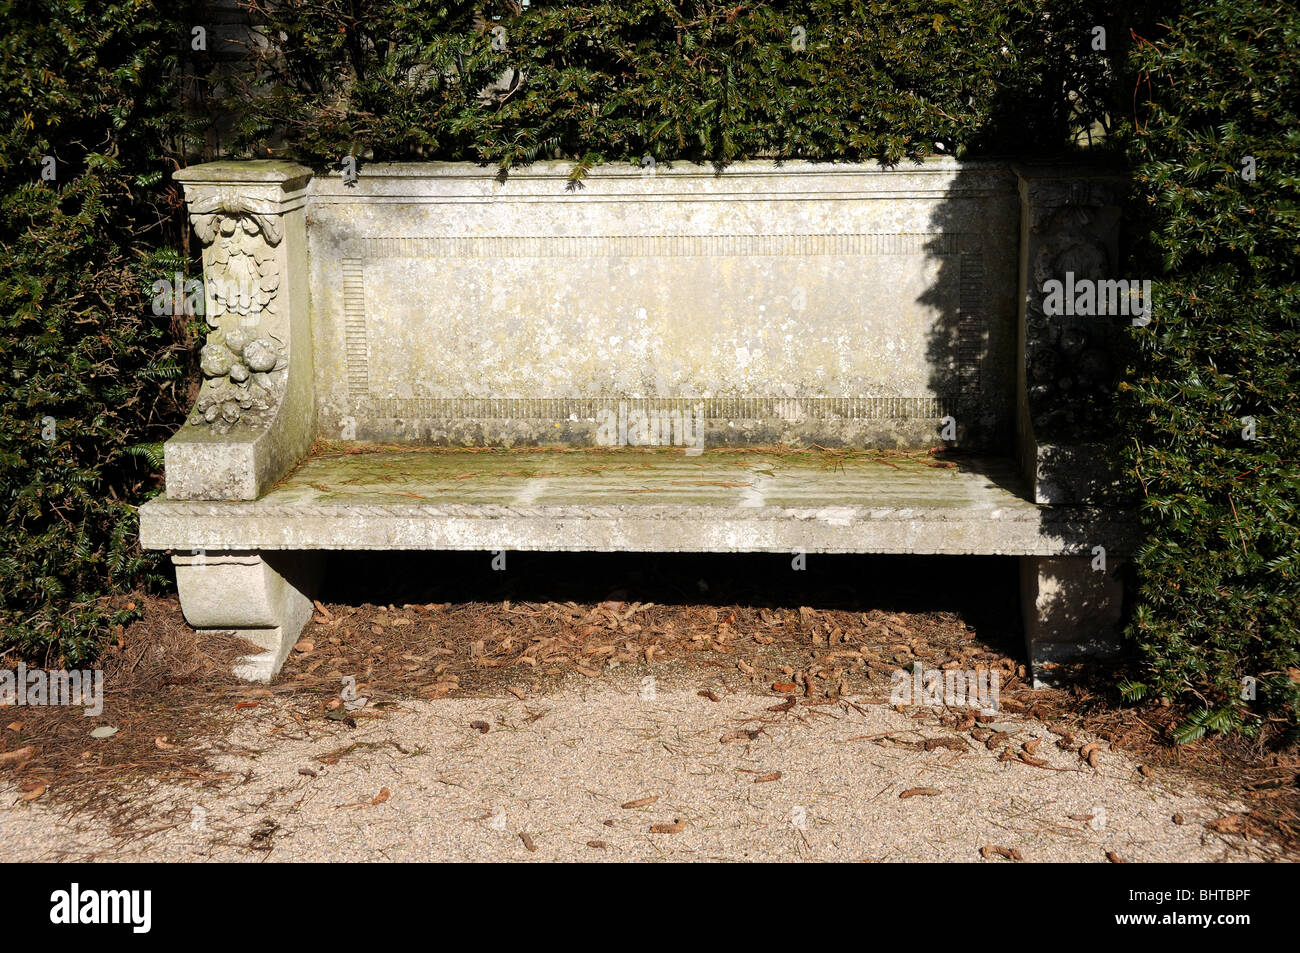 bench in yew hedge - Stock Image